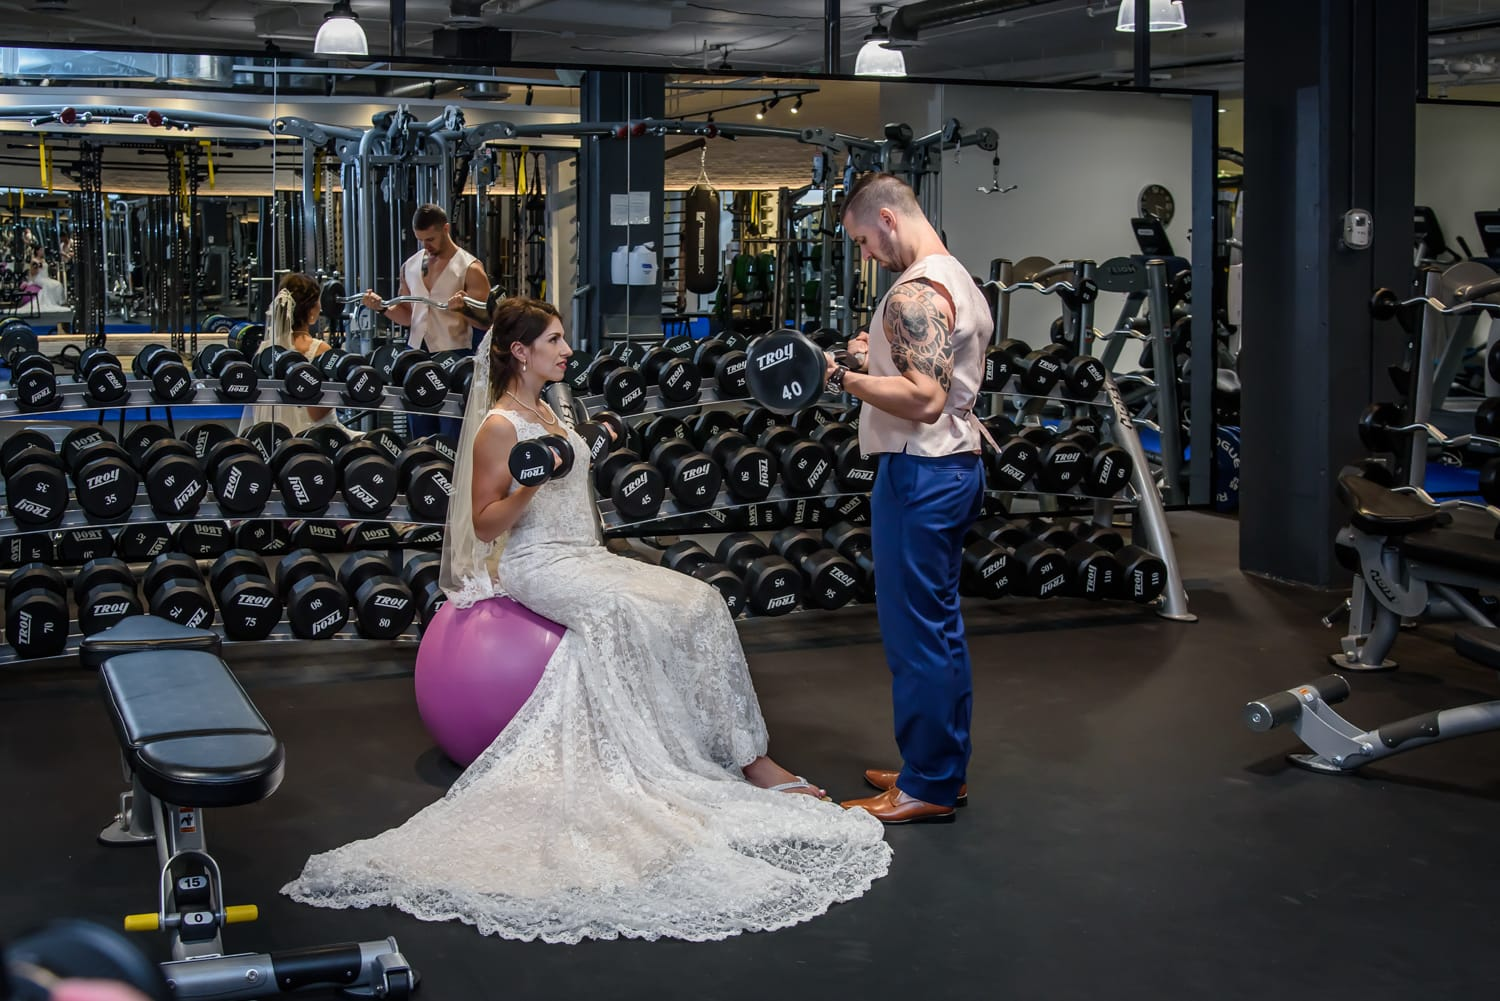 halifax ns wedding photographer, halifax wedding photographers, halifax engagement photographer, engaged, sandra adamson studios, dewolfe park, dewolfe park weddings, bride, groom, gym, O2 Wellness Gym, exercise, dumbbells, weights, shakes,